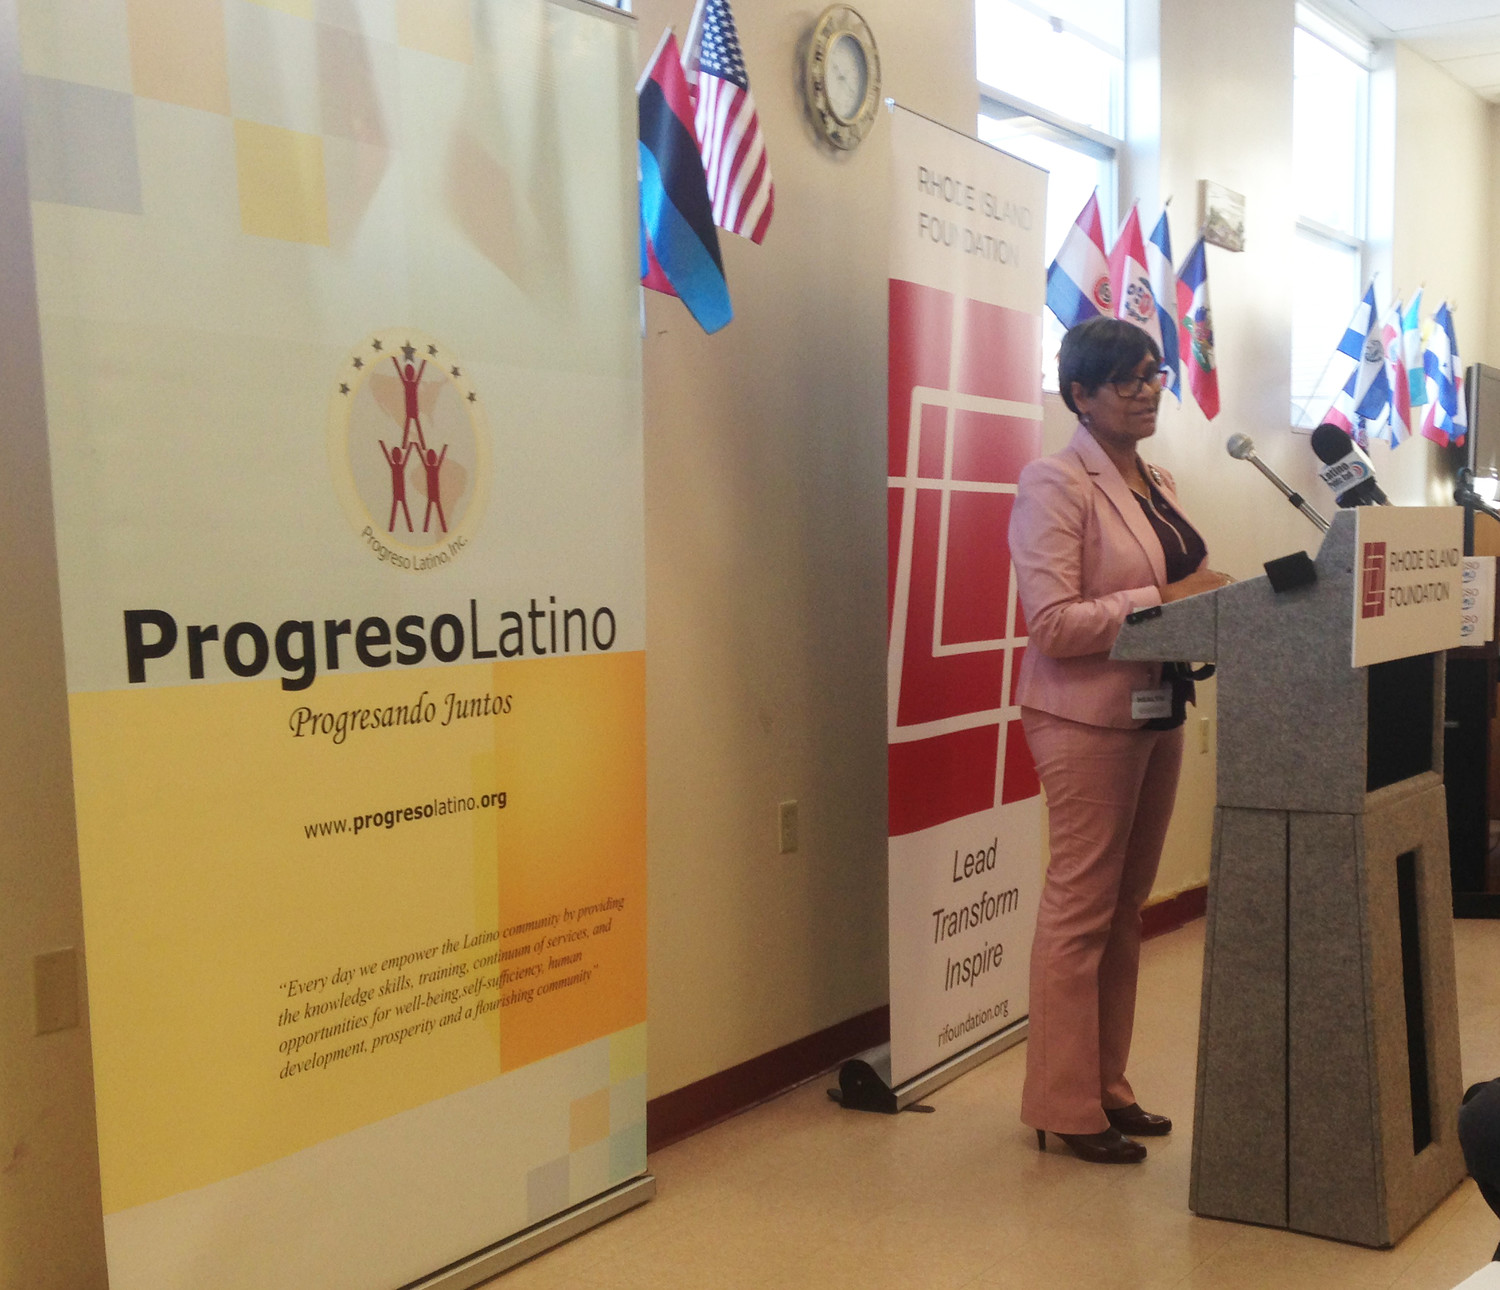 Ana Novais, executive director of the R.I. Department of Health, spoke at the announcement of $3.6 million in grants by The Rhode Island Foundation in six health equity zones in the state.